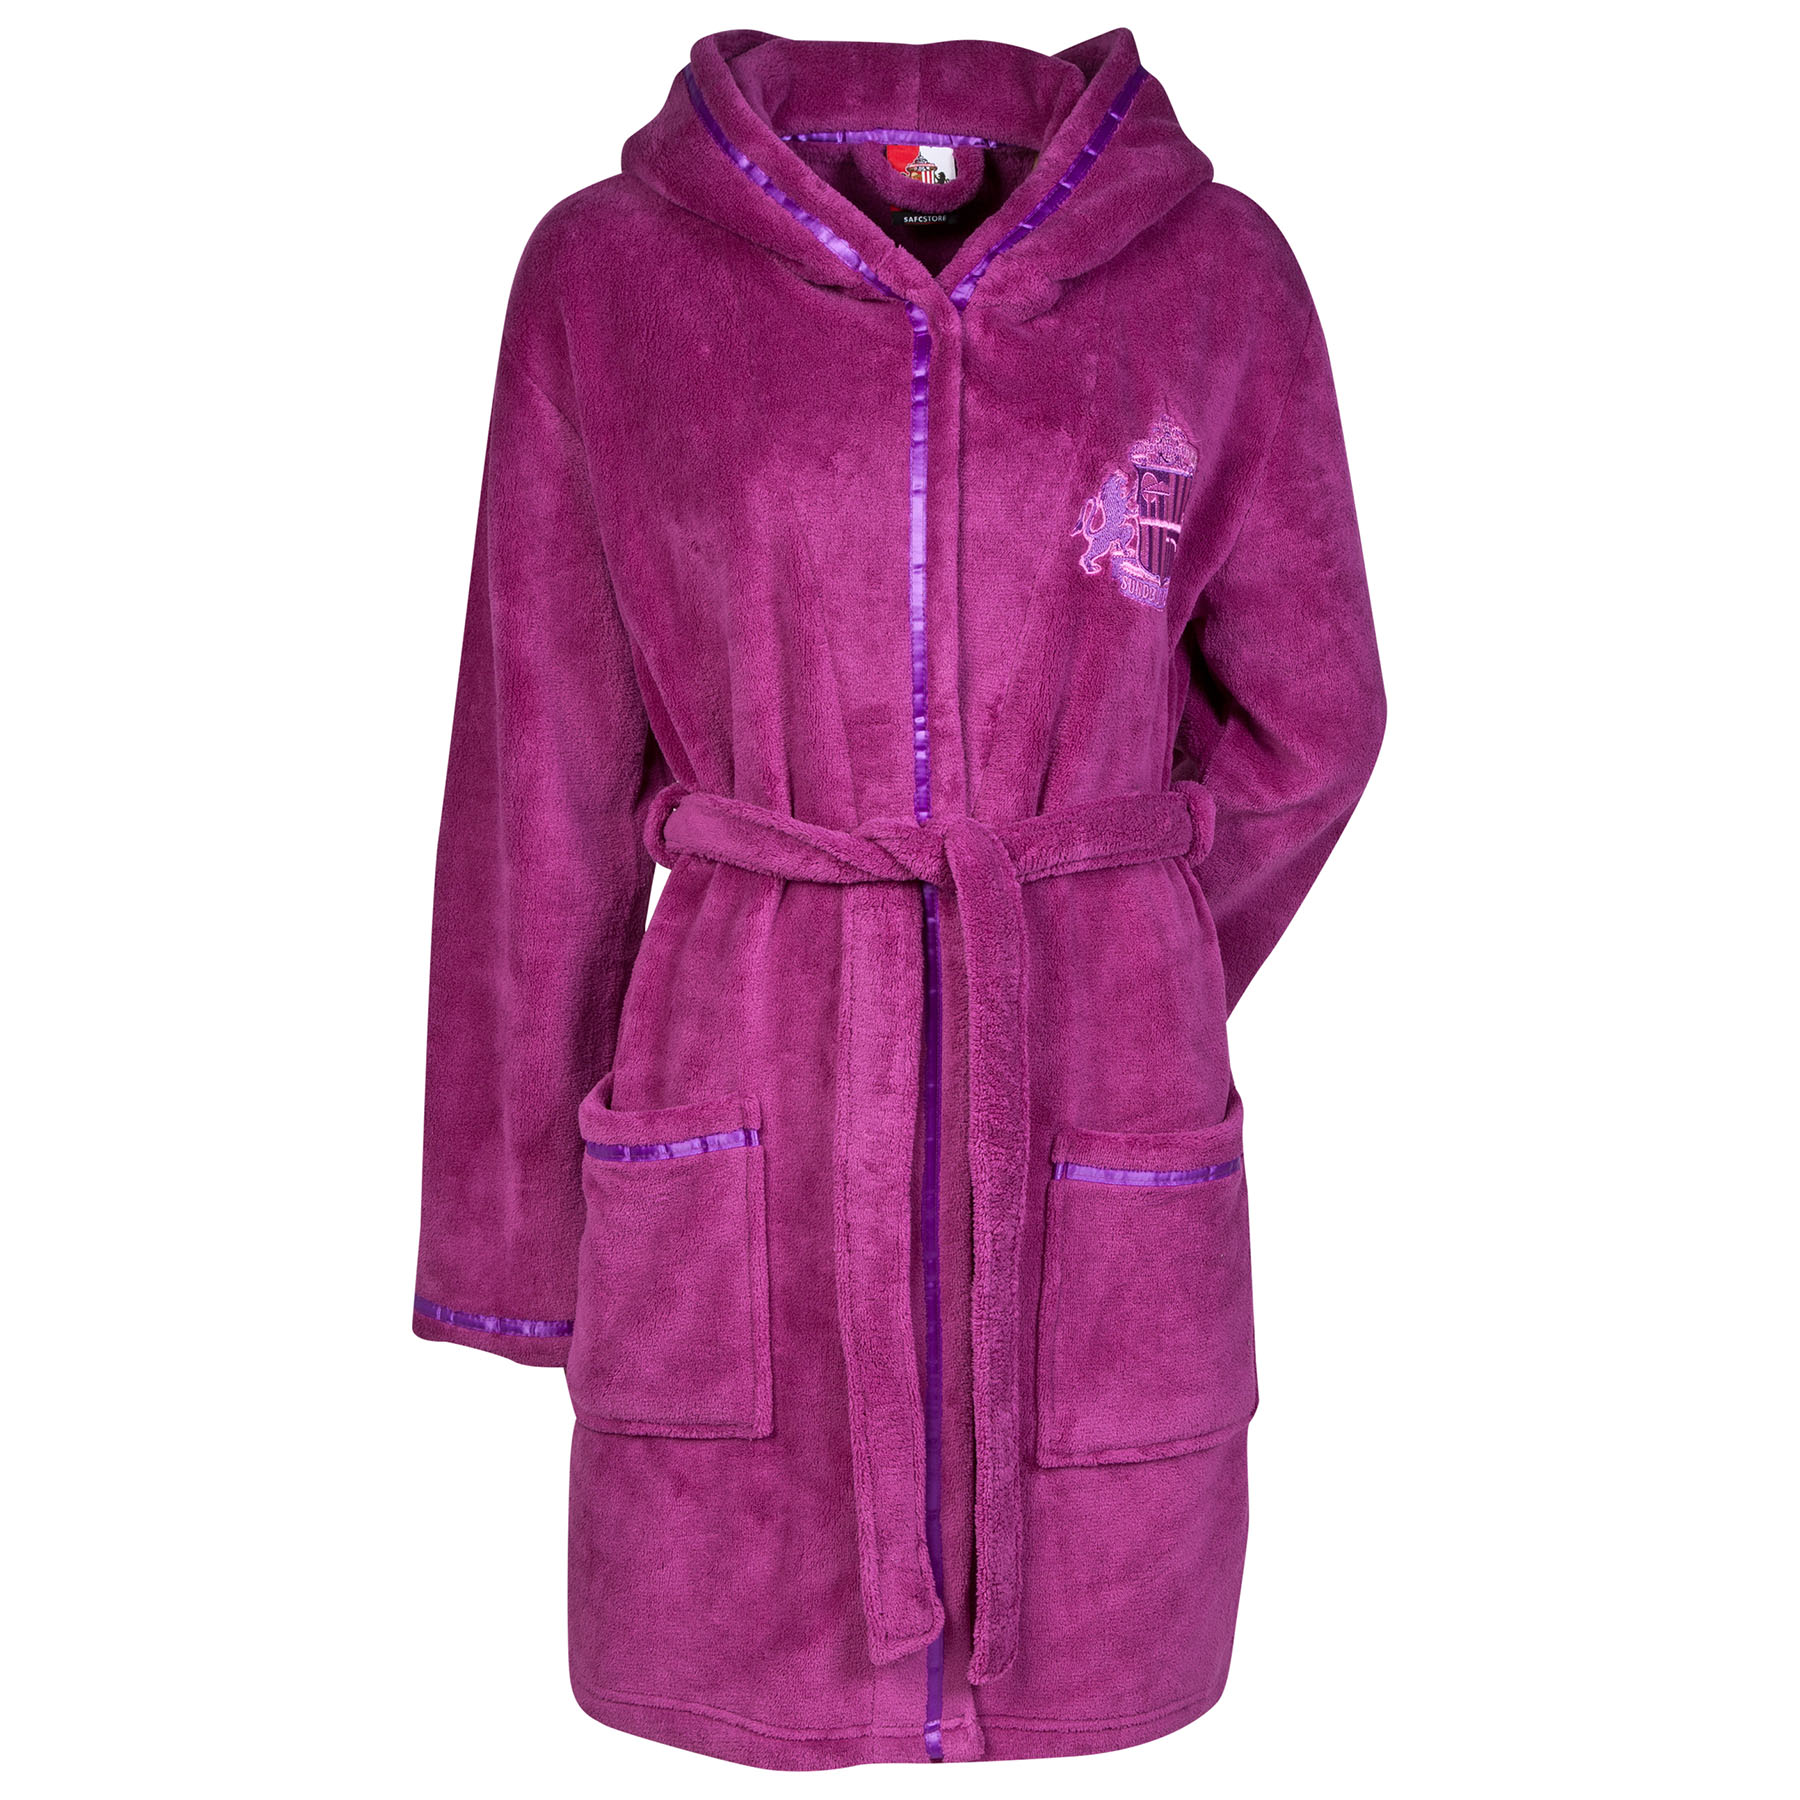 Sunderland Robe-Magenta/Purple - Womens